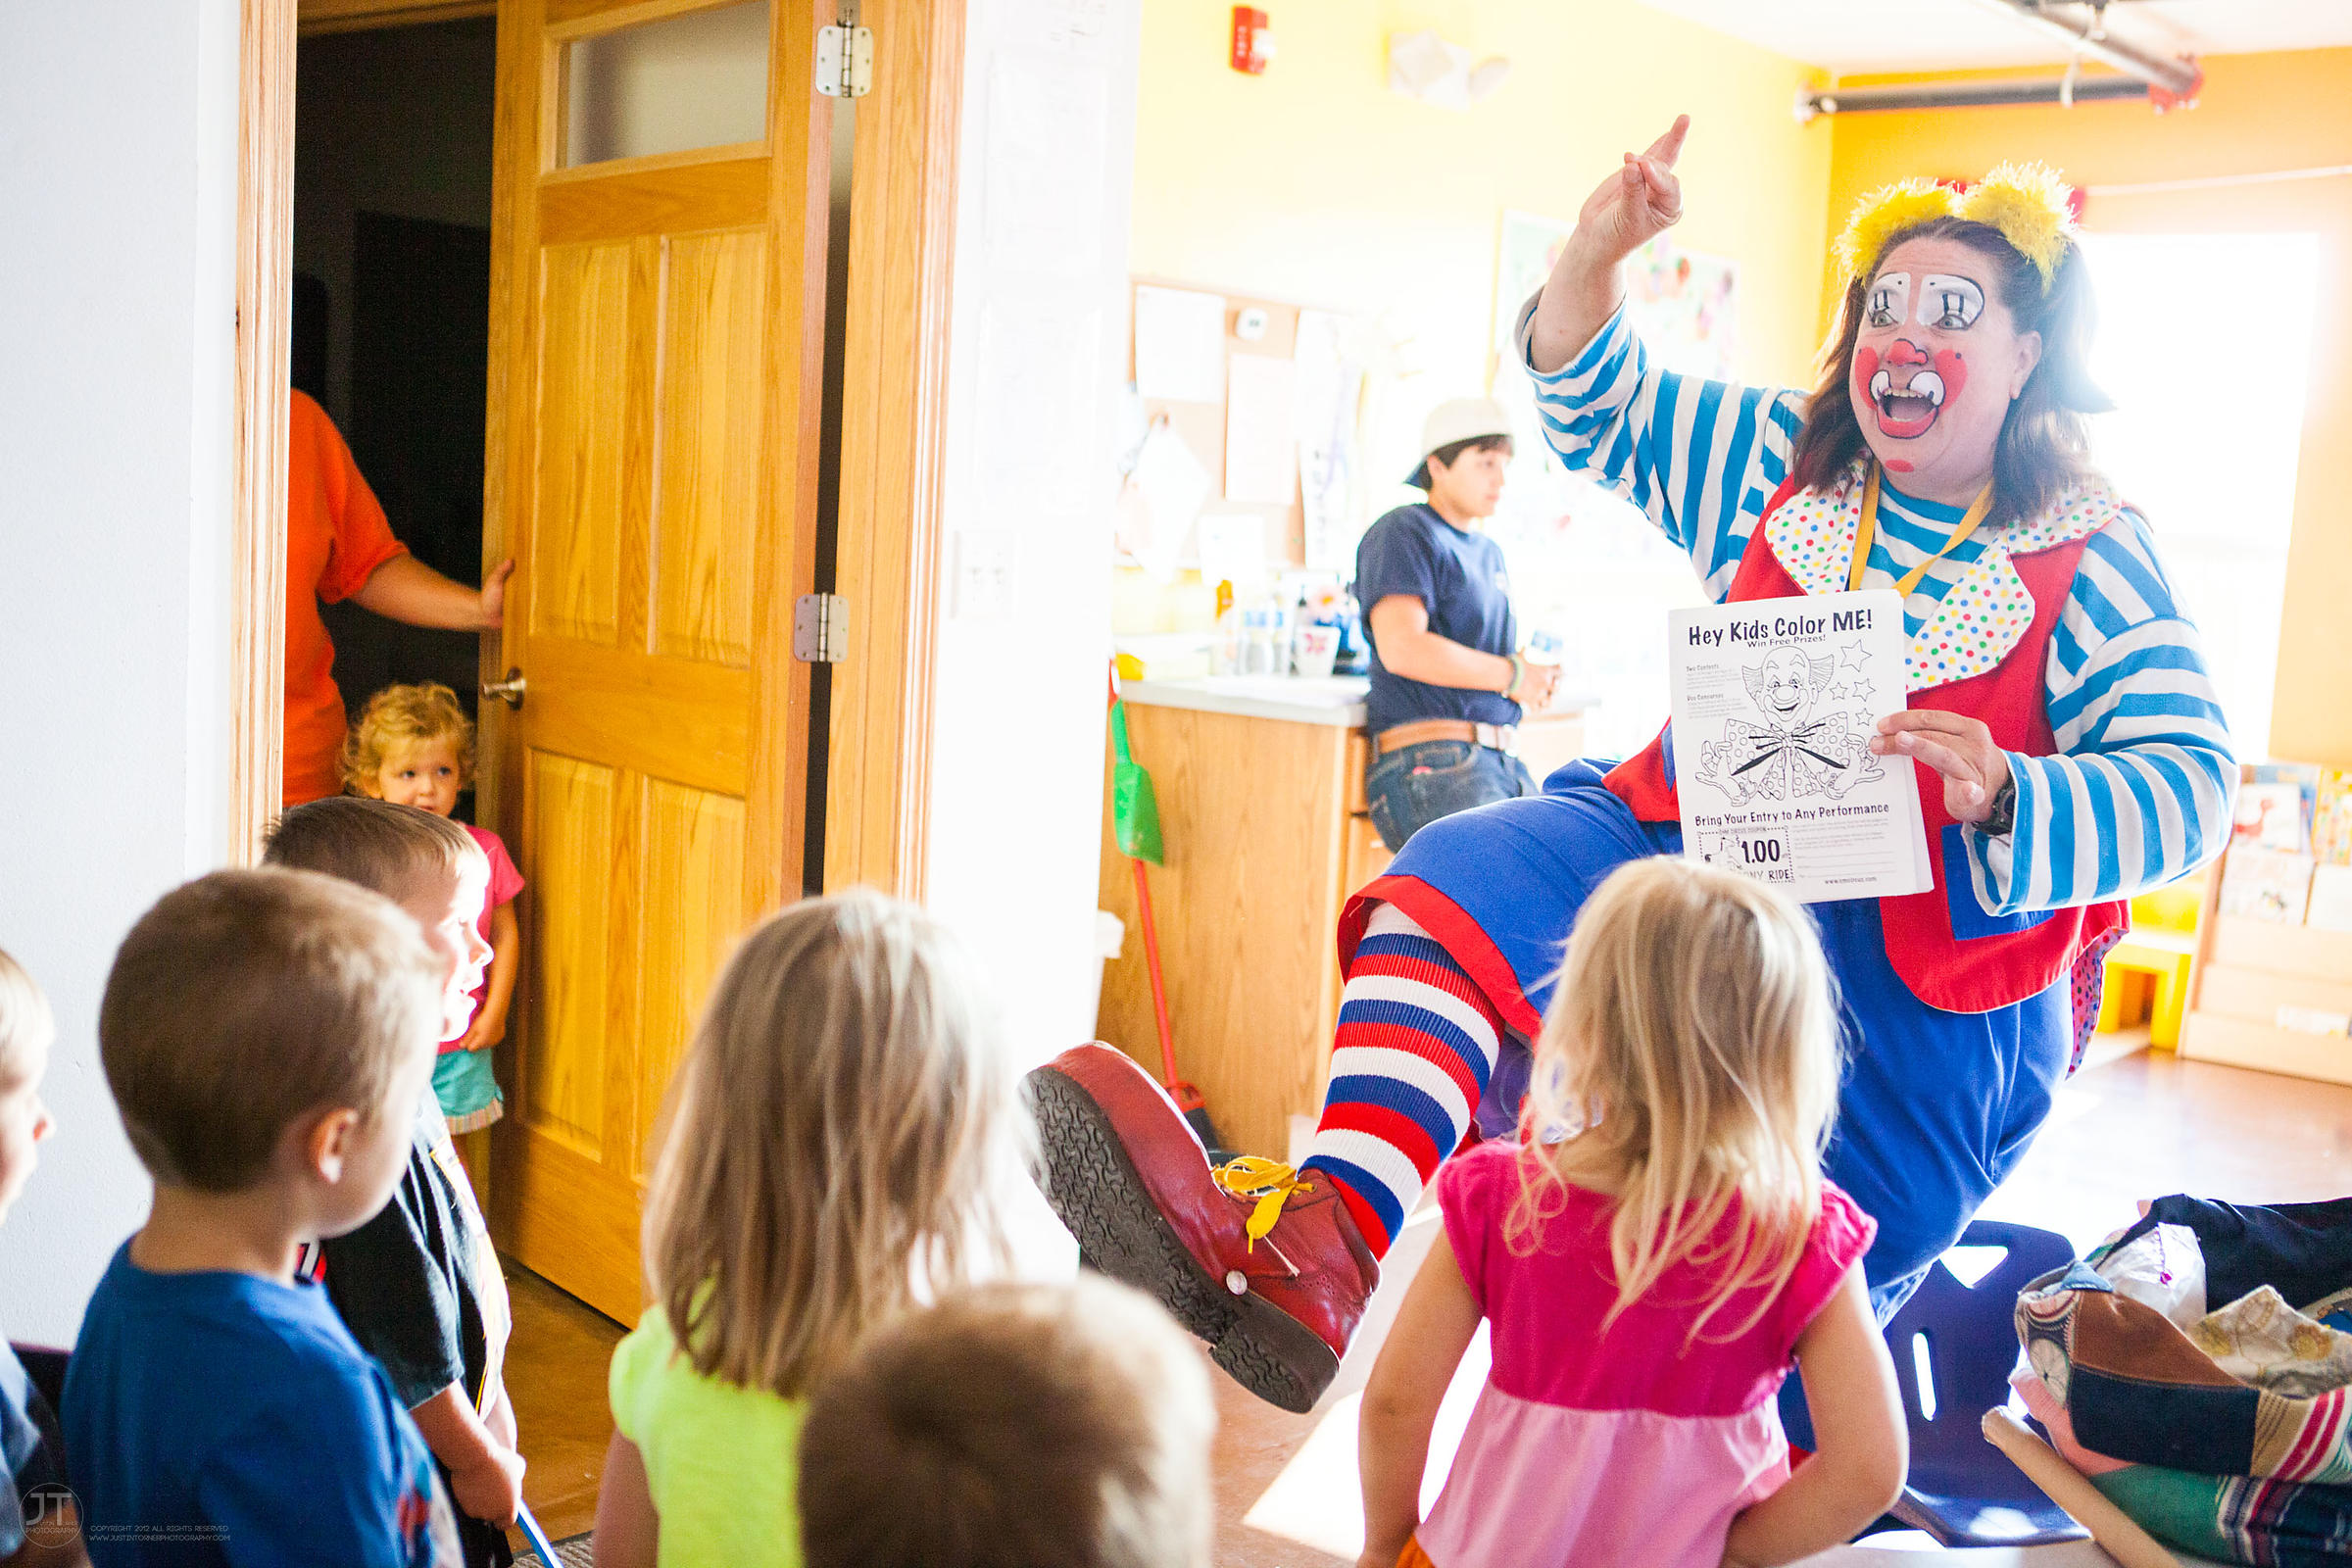 Ms. Skeeter, a clown performer with the Culpepper-Merriweather Great Combined Circus entertains children at the Little Clippe...